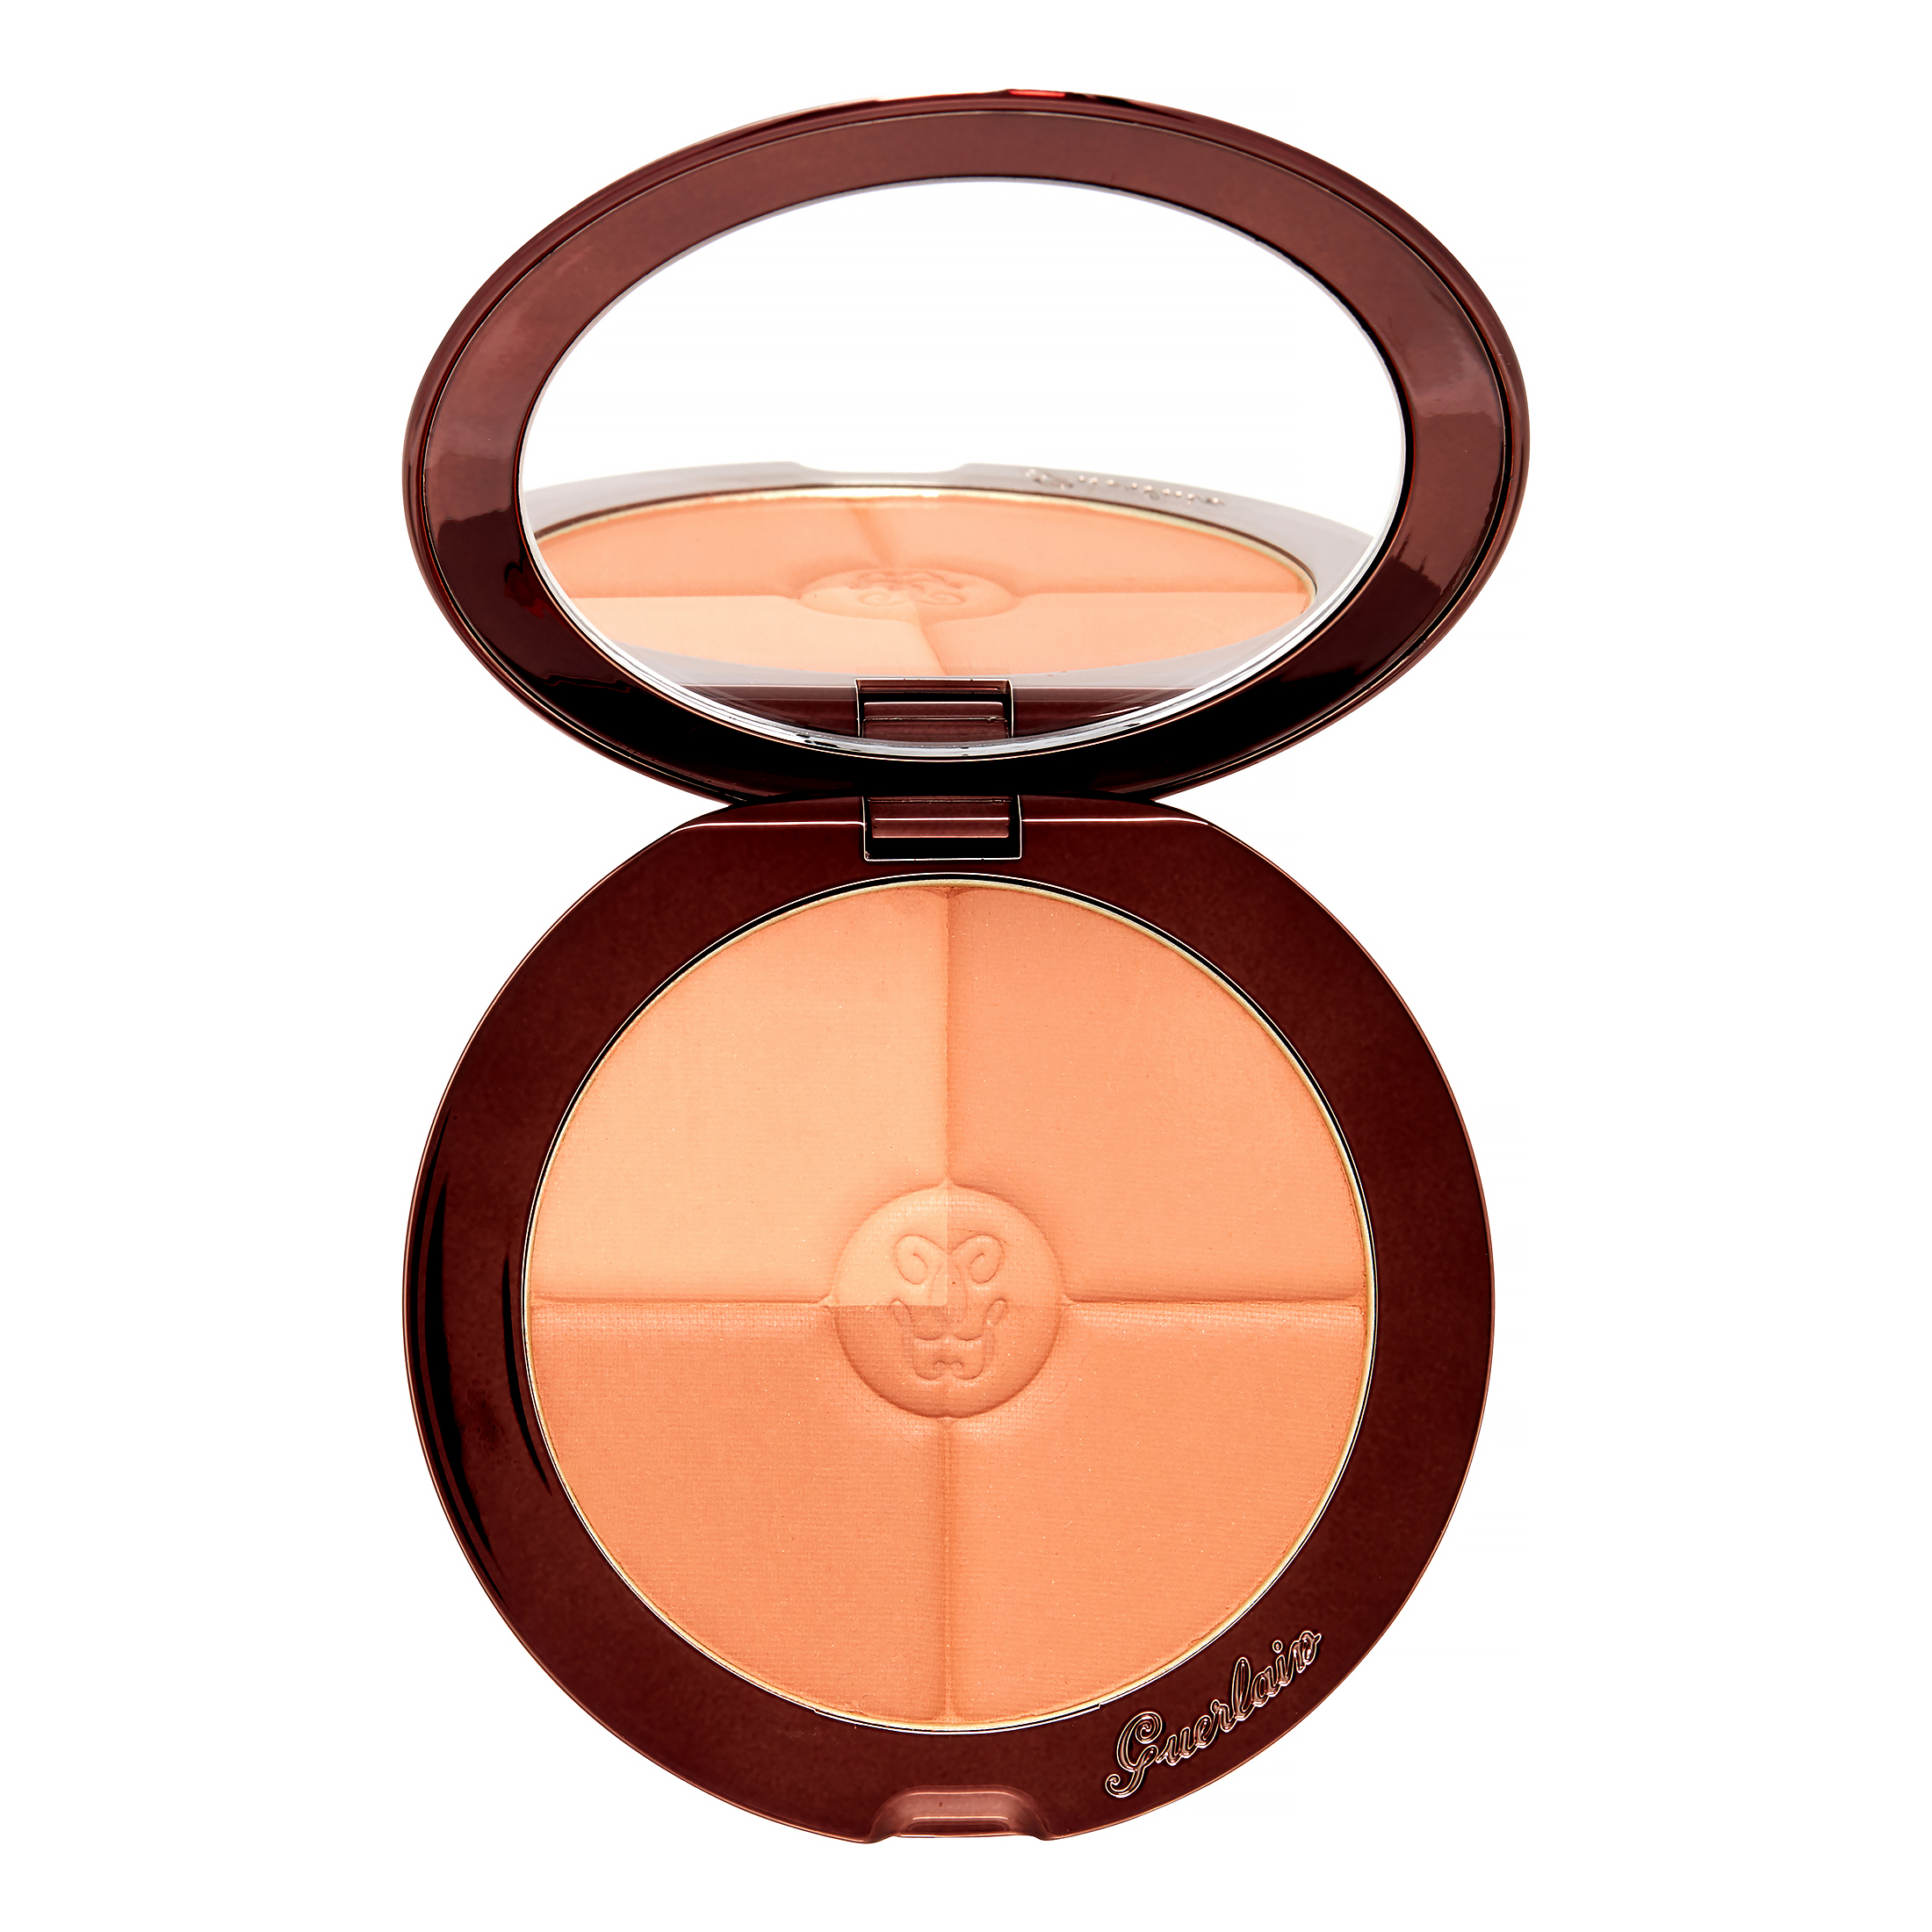 Guerlain Terracotta 4 Seasons Contour and Bronzing Powder with SPF 10, 04 Moyen Blondes, 0.35 Oz